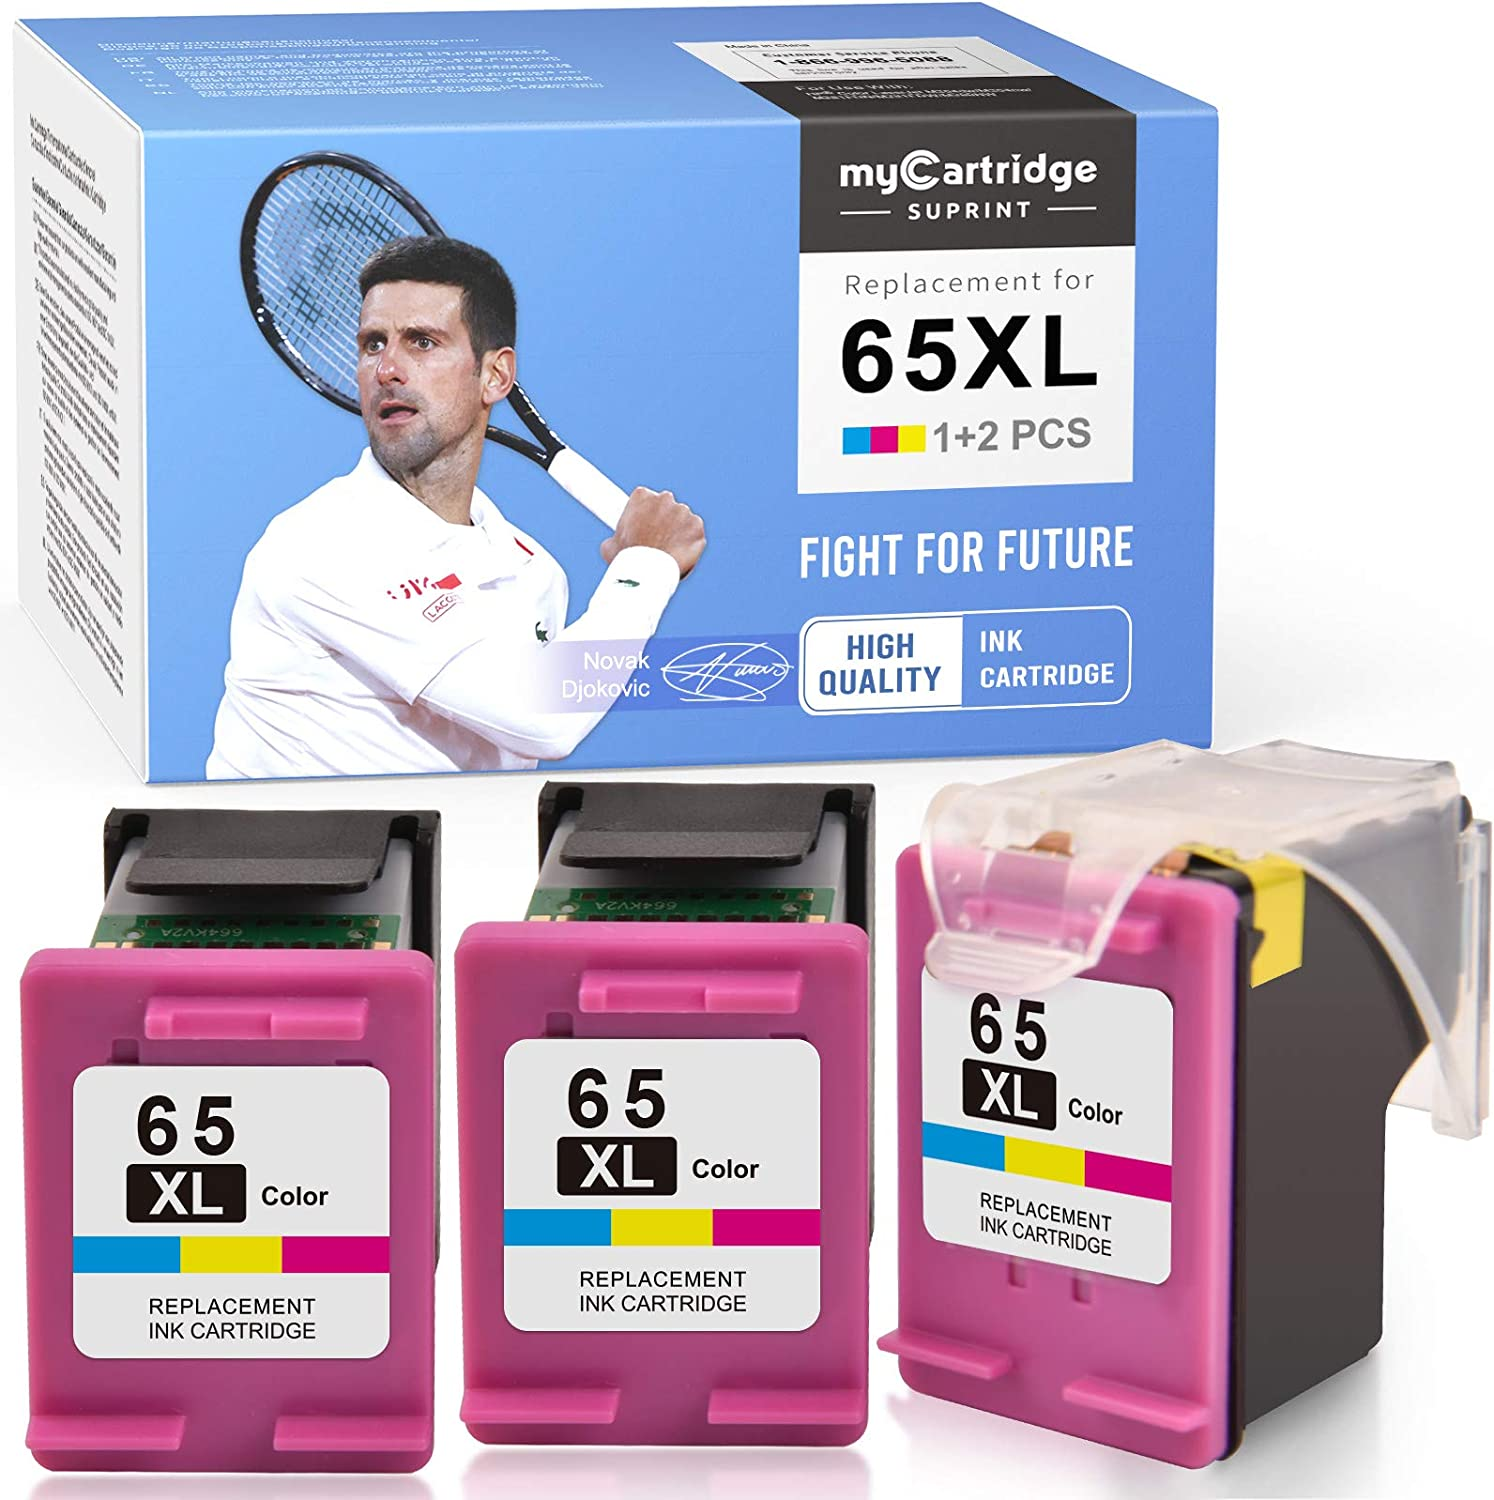 myCartridge SUPRINT Remanufactured Ink Cartridge Replacement for HP 65XL 65 XL Eco-Saver use with DeskJet 3755 2622 3752 2655 2600 2652 2636 2642 3720 3722 Envy 5055 5052 5012 (Tri-Color, 1 + 2 Pack)